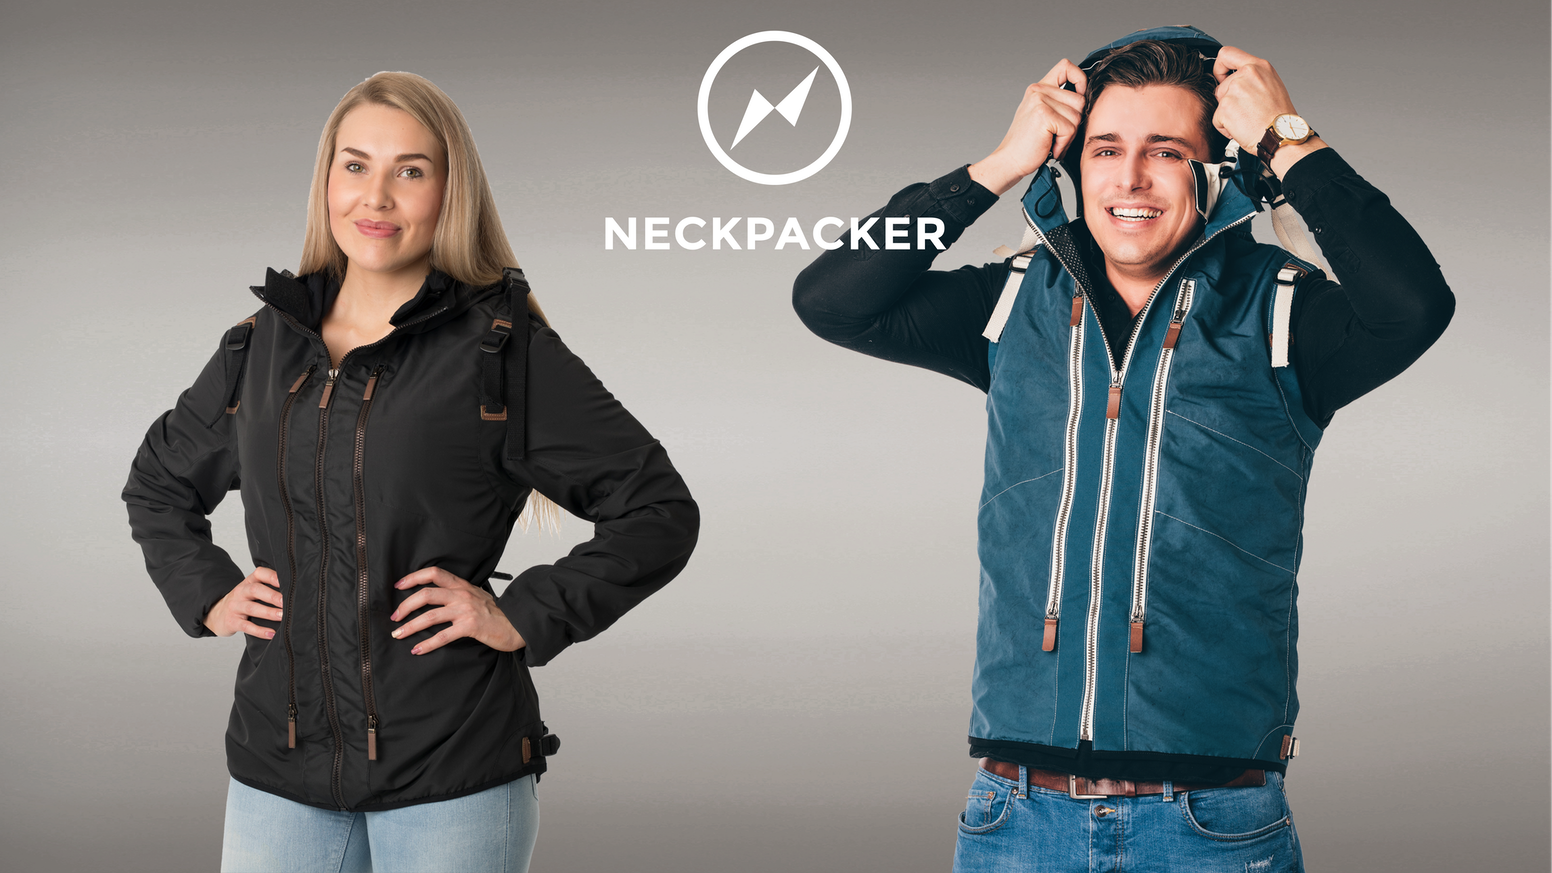 f7a8a13a7c2 Neckpacker travel wear  the most comfortable travel experience your neck s  been aching for.